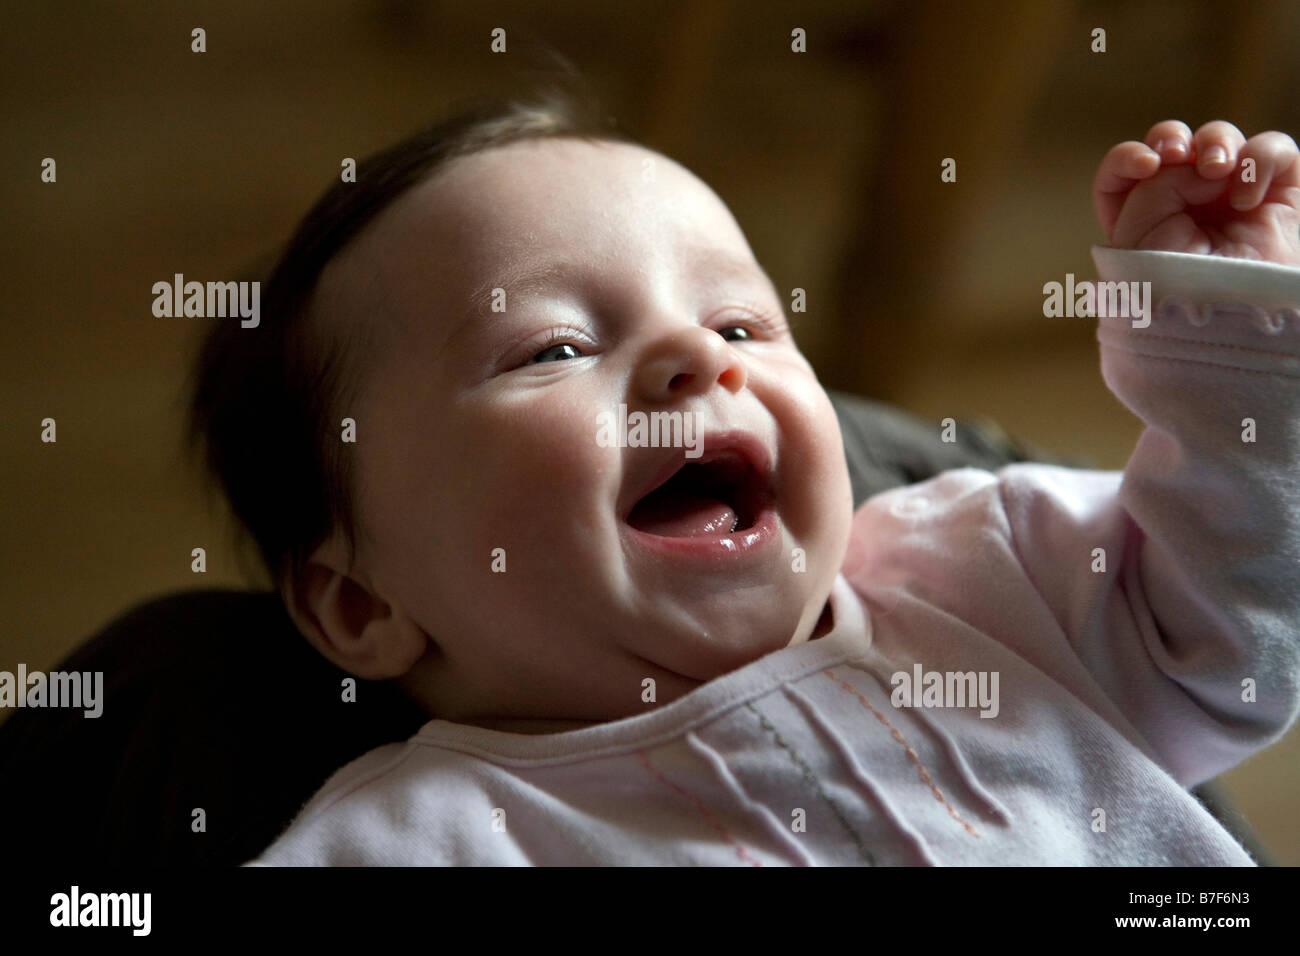 A baby girl laughing with joy - Stock Image